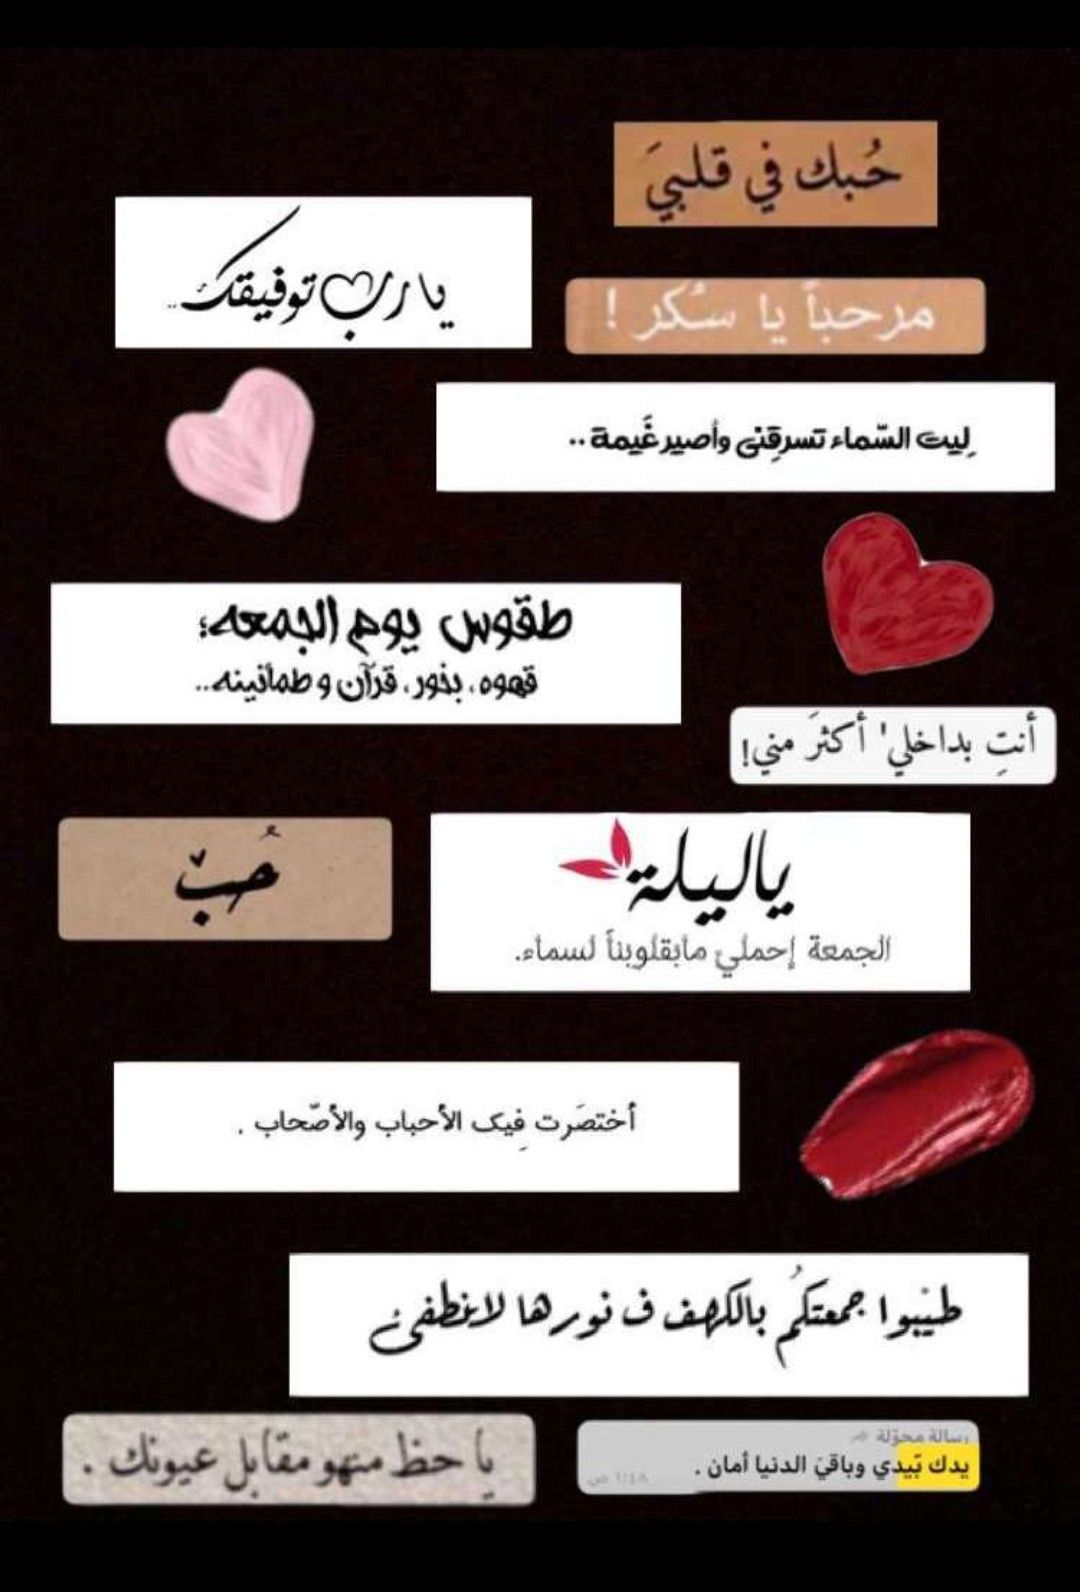 Pin By To0oty On رمزيات Iphone Wallpaper Quotes Love Love Smile Quotes Arabic Tattoo Quotes